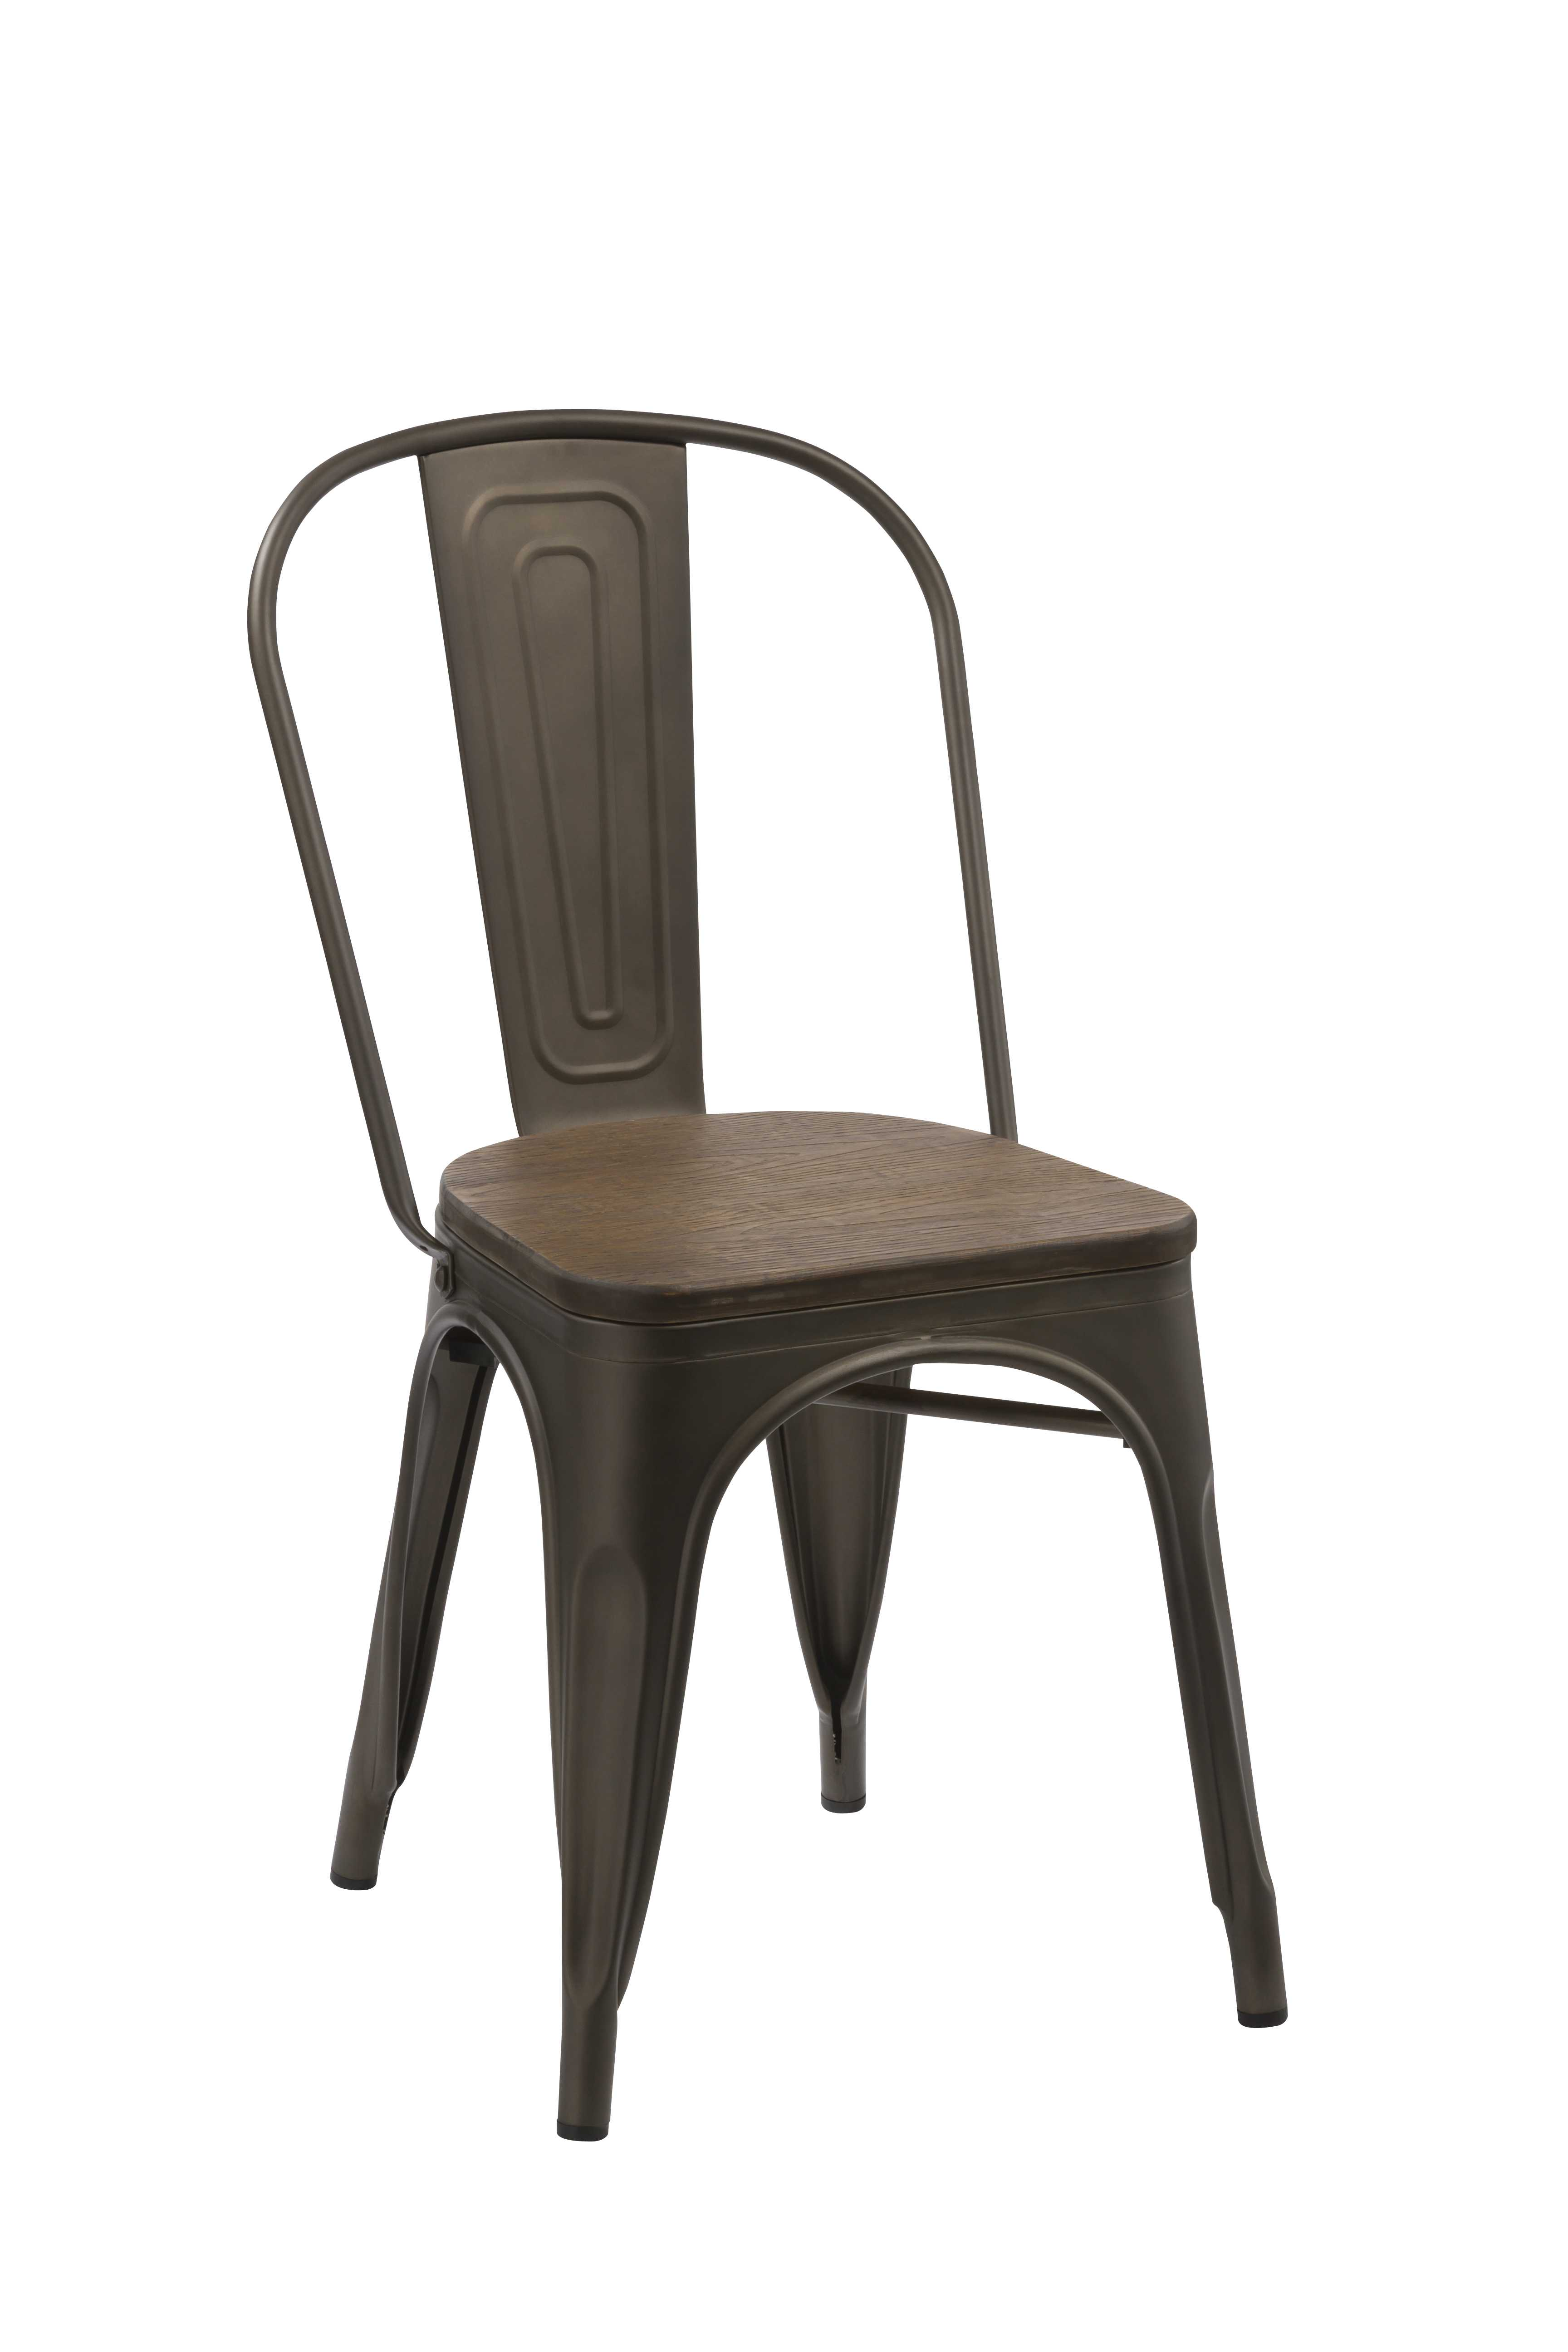 Silla Antik Old Bronce